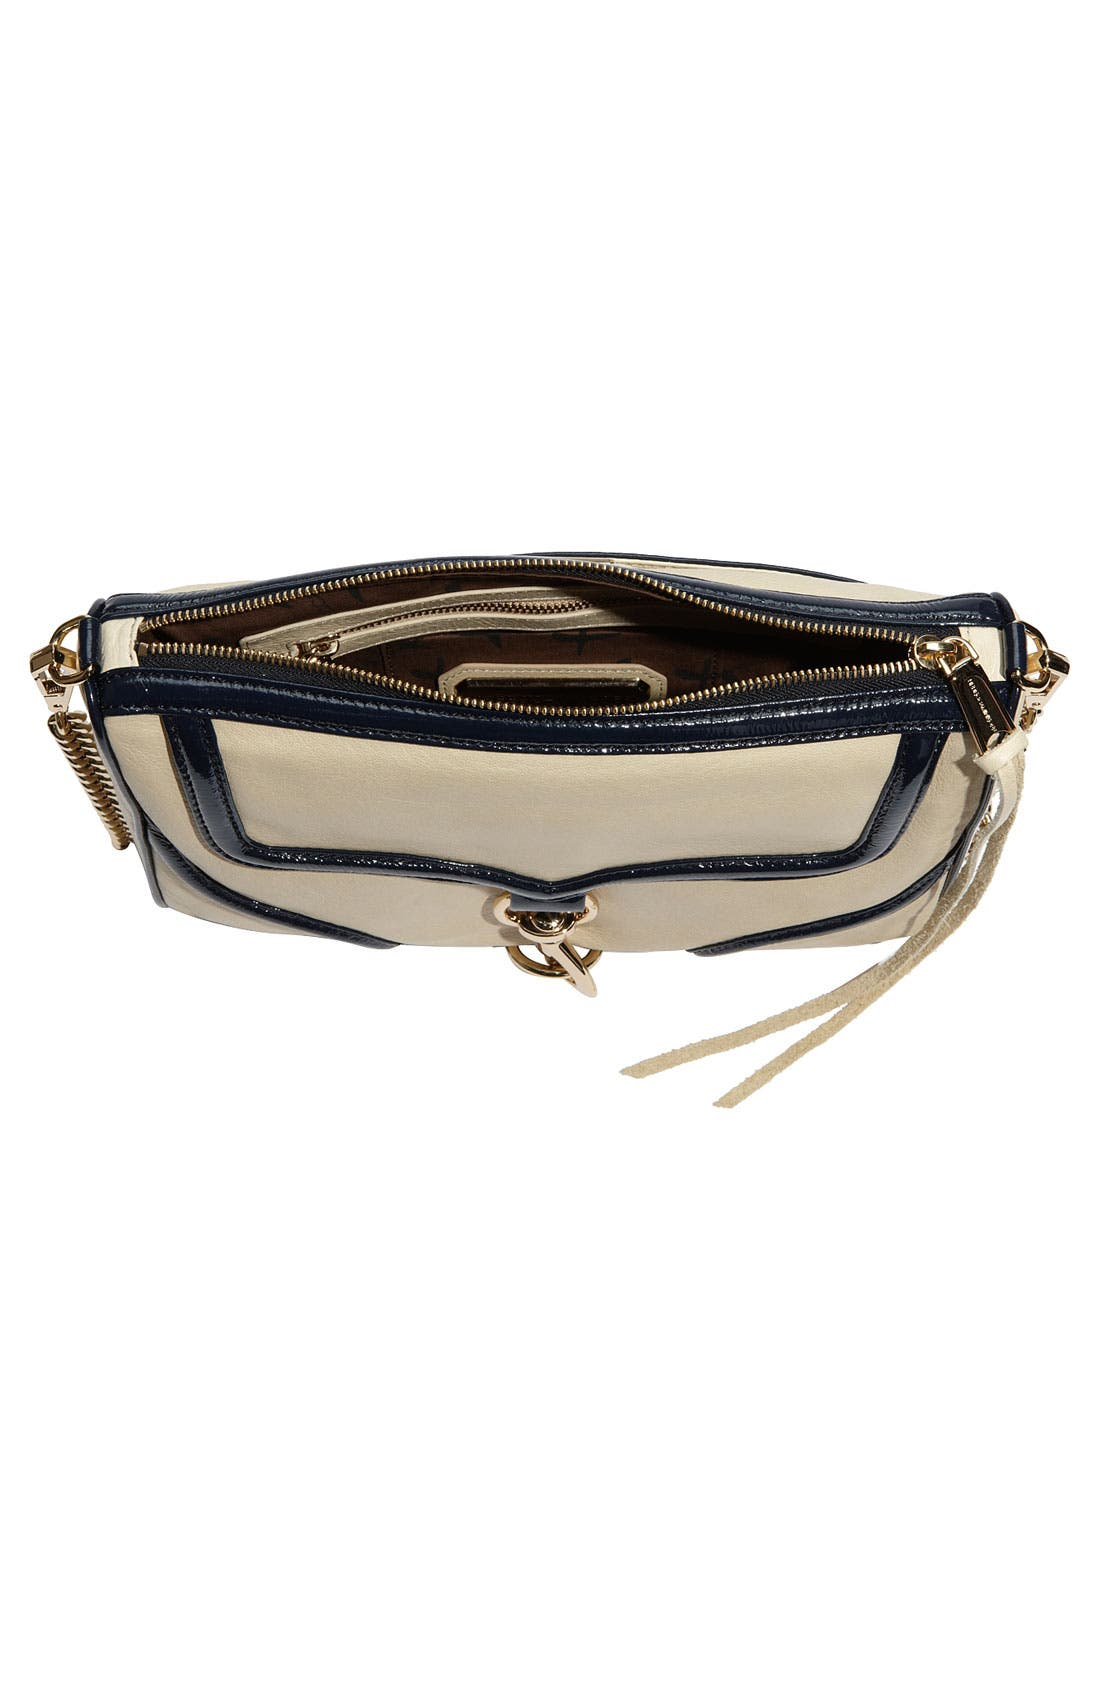 'Bombe MAC' Leather Crossbody Clutch,                             Alternate thumbnail 3, color,                             Ivory W/ Navy Trim